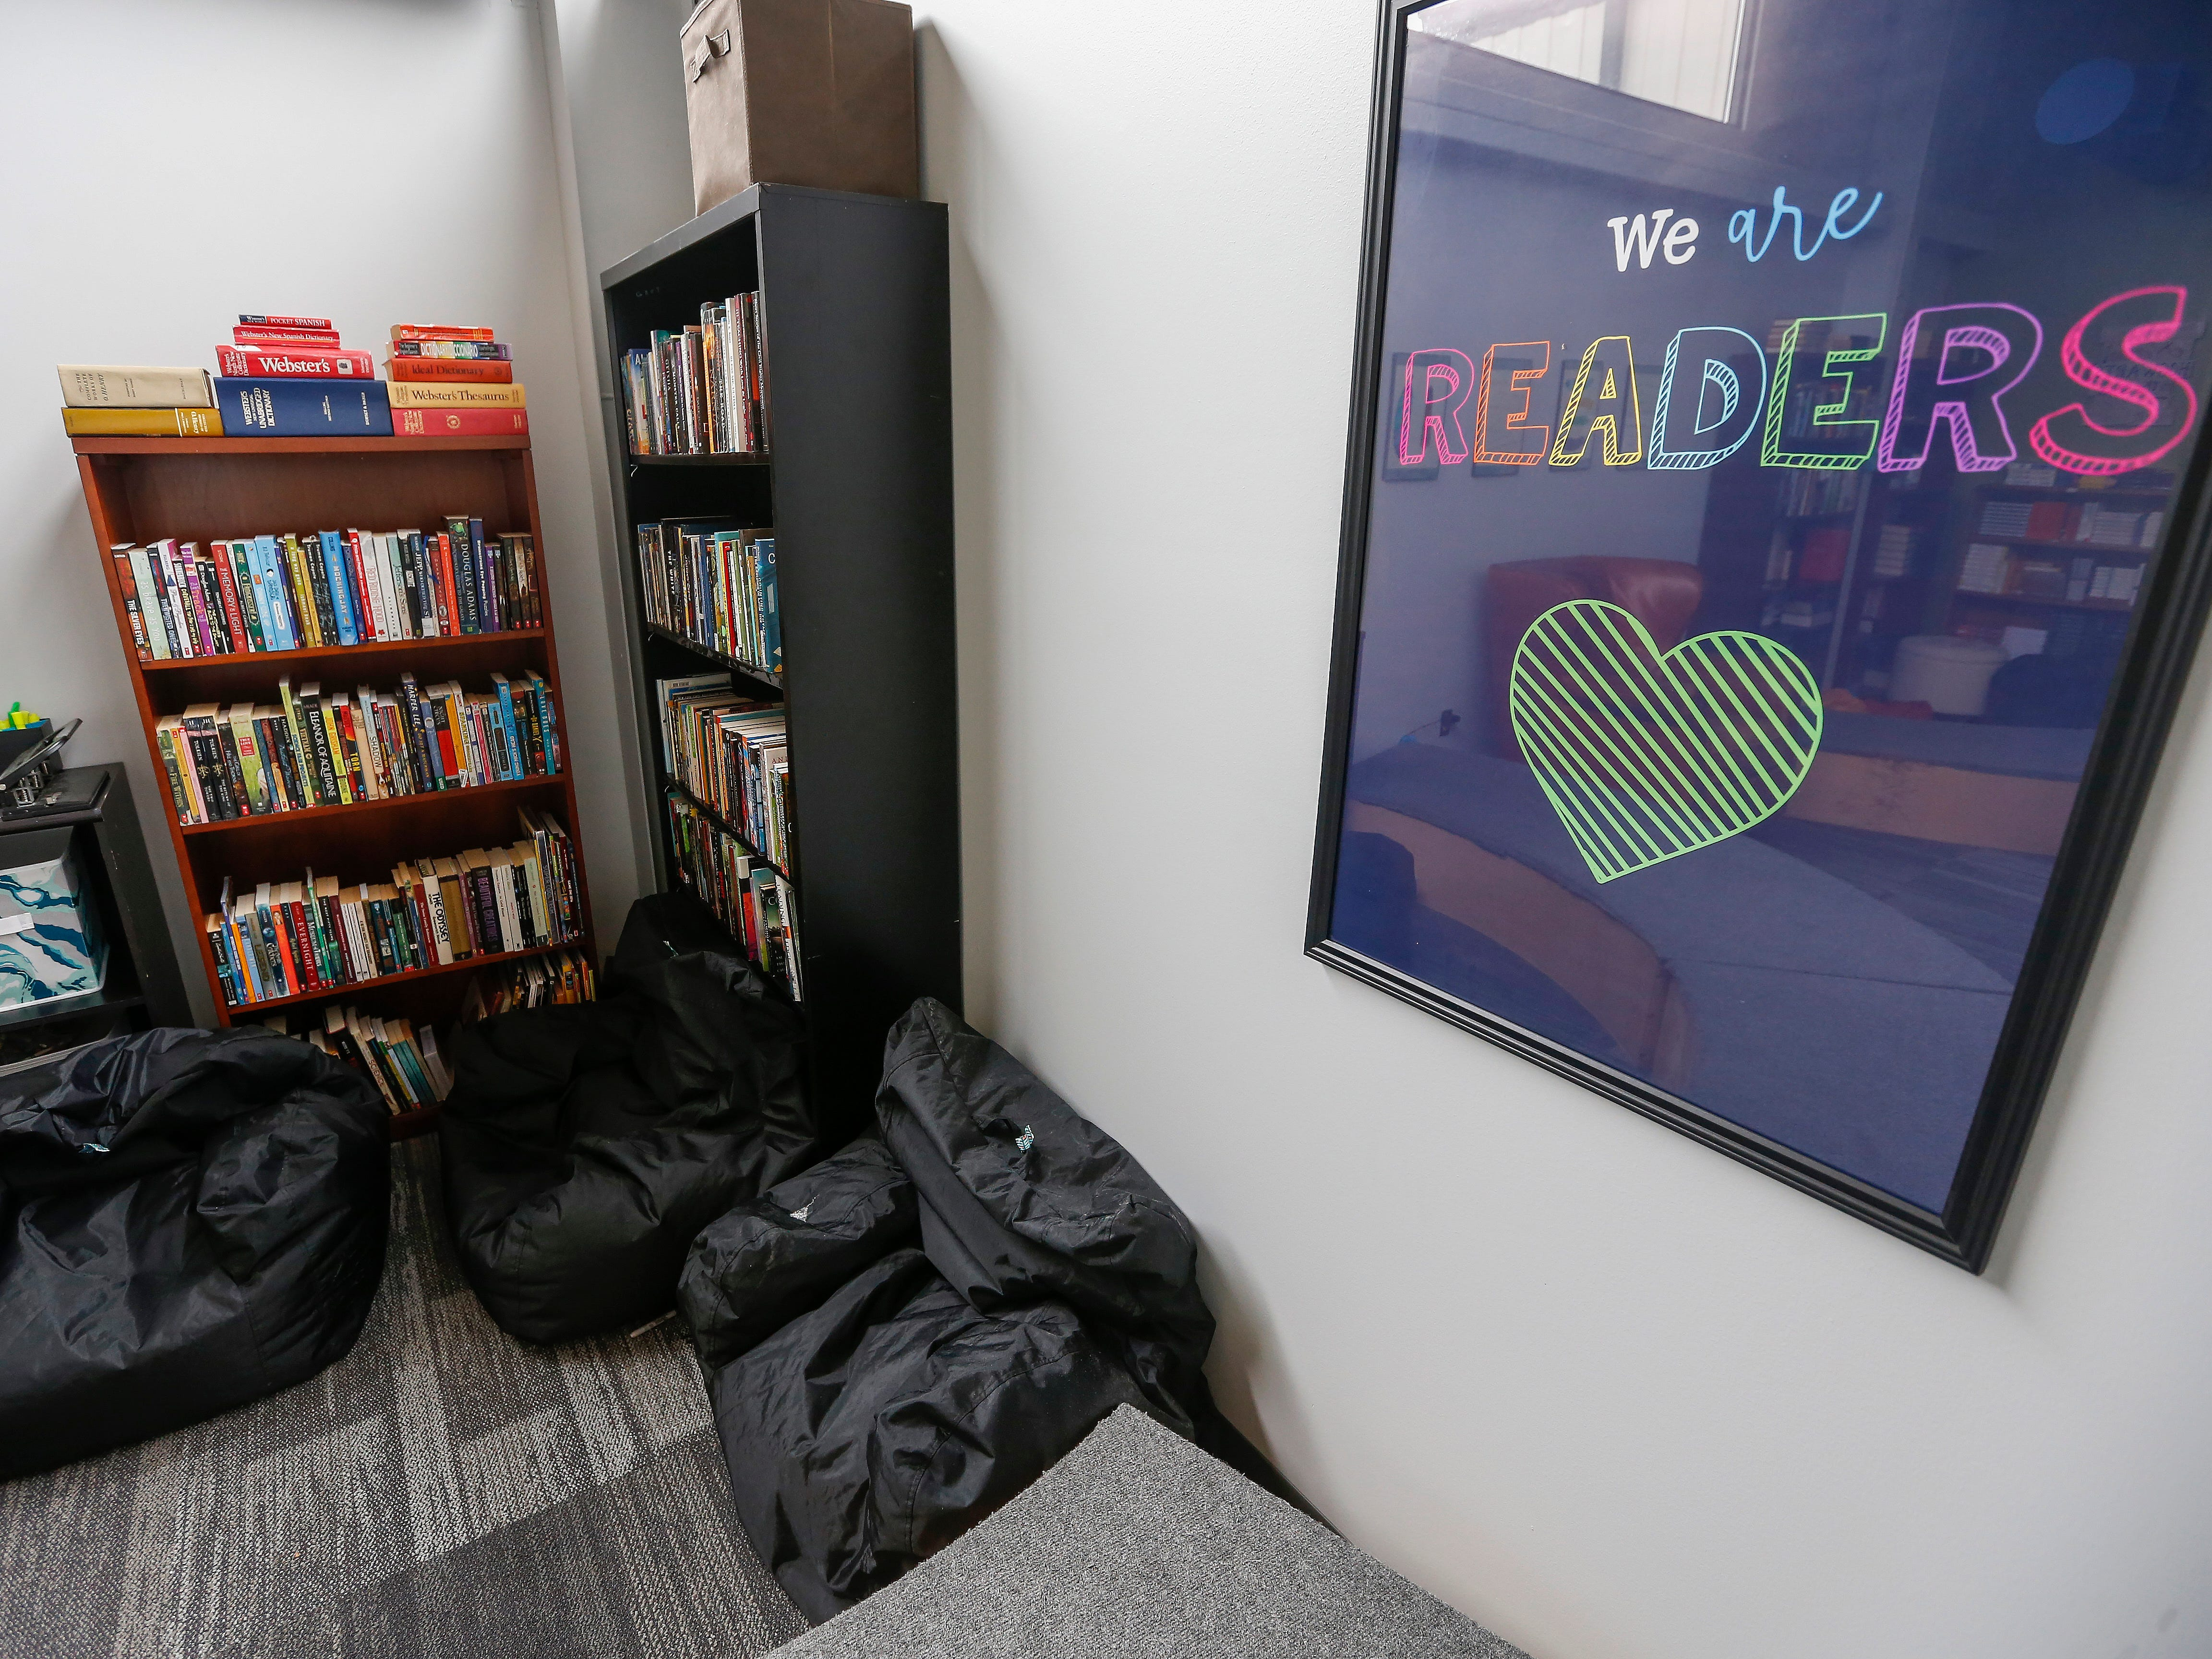 A large selection of books is available to students inside the language arts classroom at the Summit Preparatory School.